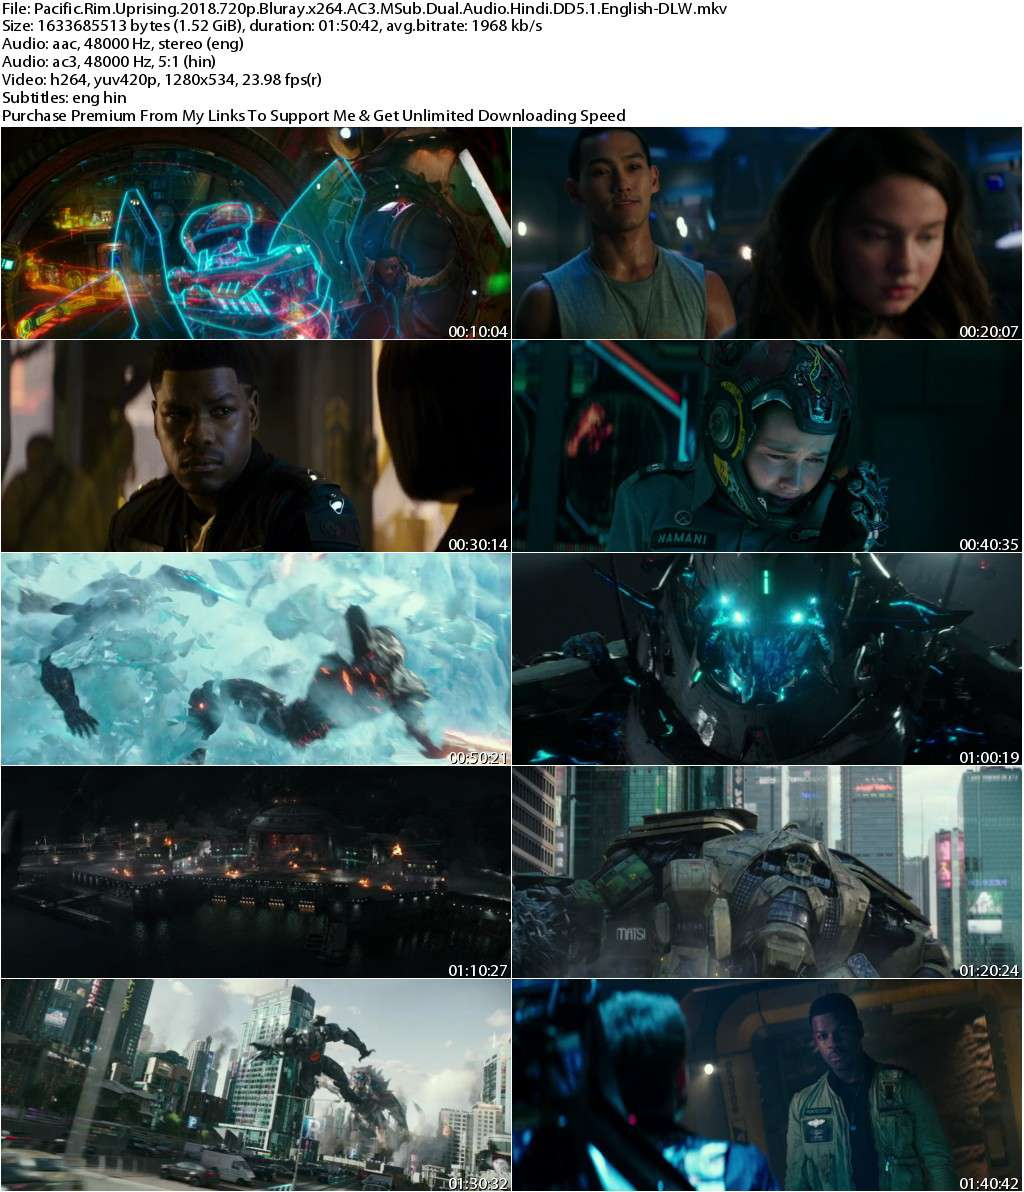 Pacific Rim Uprising (2018) 720p Bluray MSub Dual Audio [Hindi DD5.1+English]-DLW